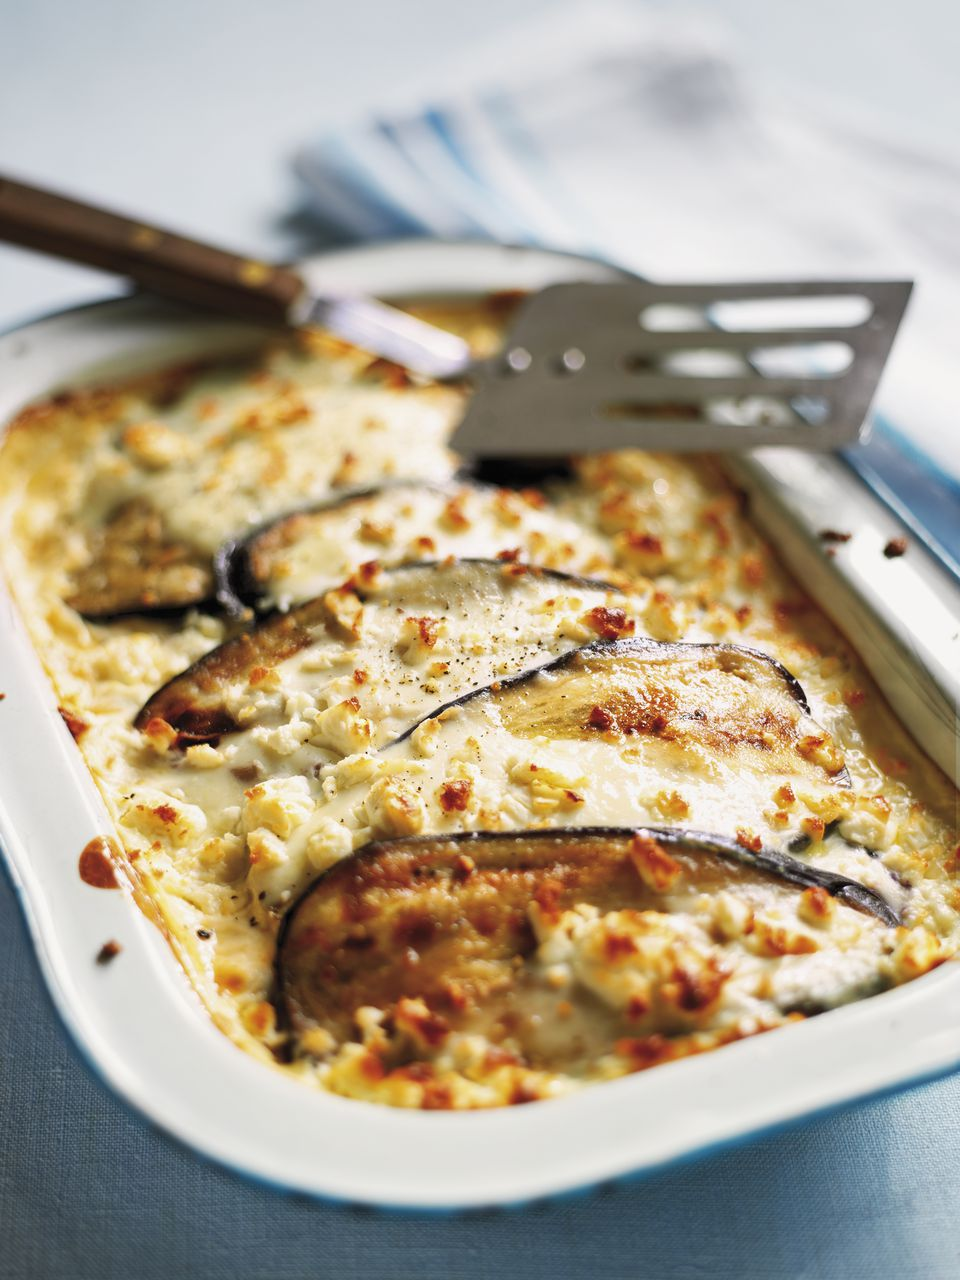 Moussaka in metal dish, with spatula, high angle view